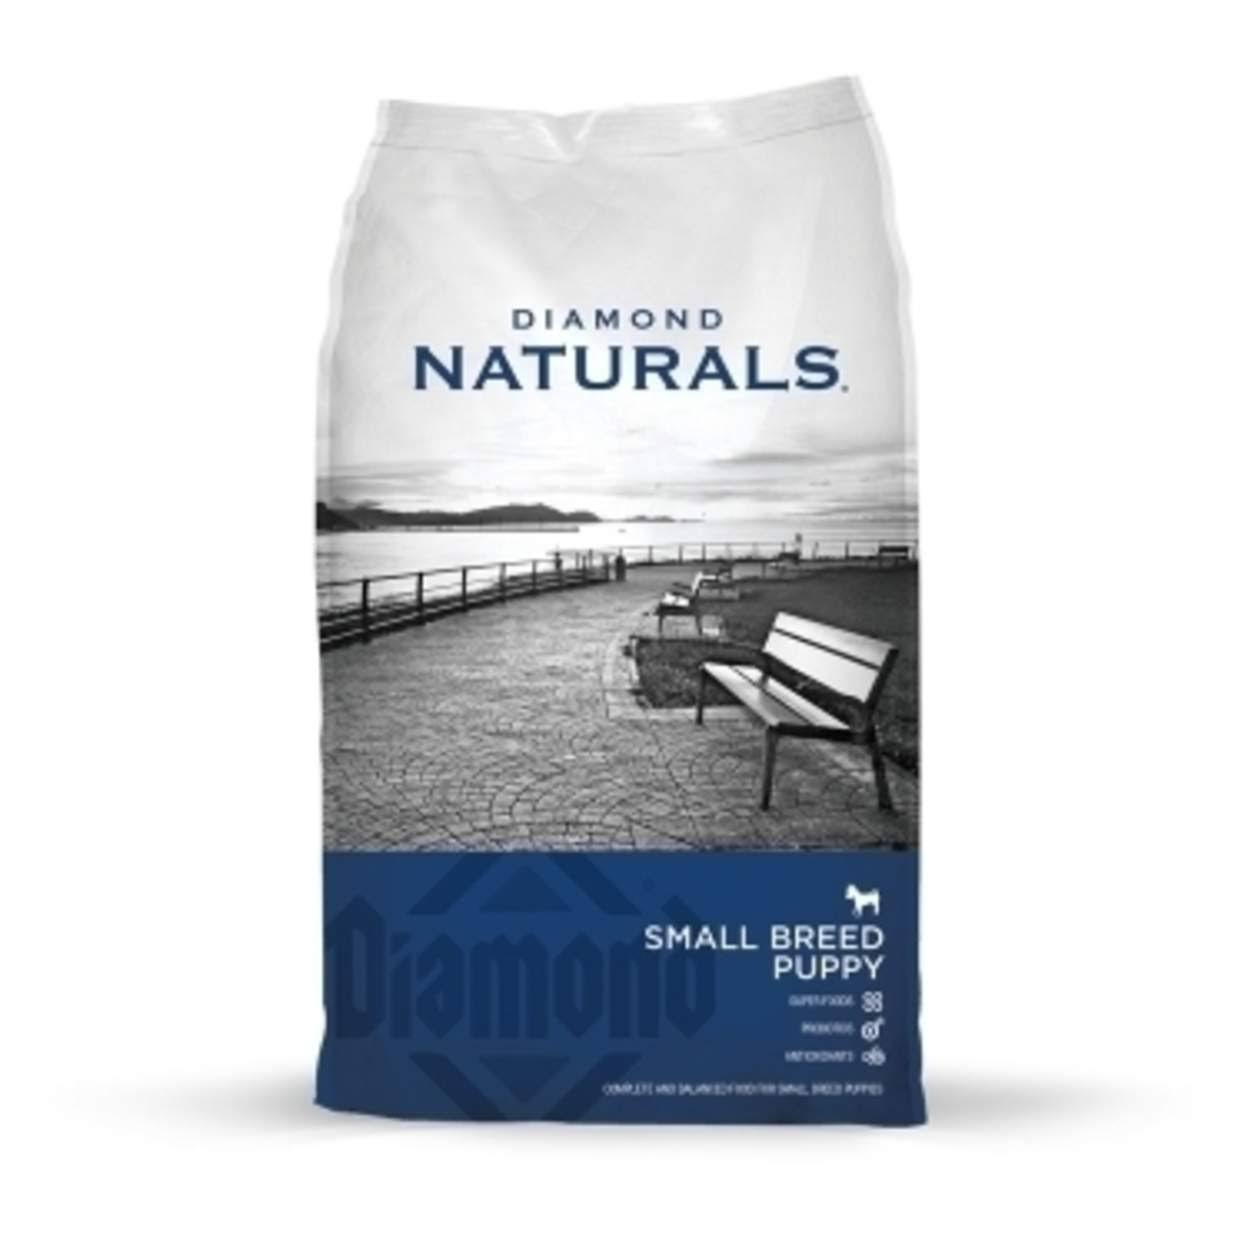 Diamond Naturals Small Breed Puppy Dry Food - 18-lb